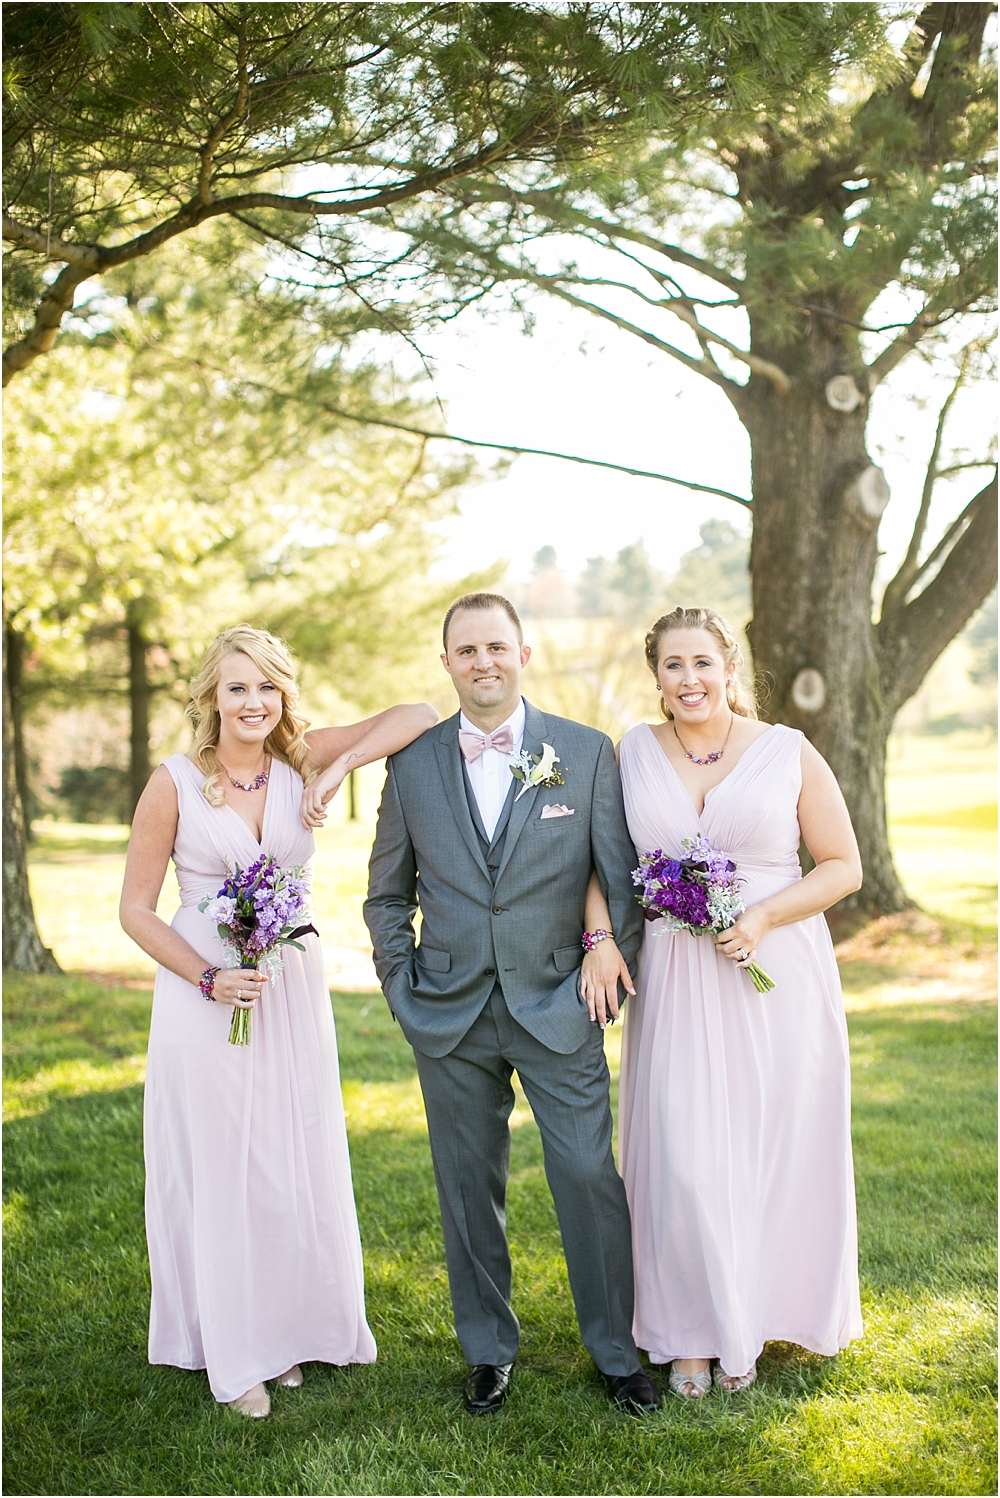 Piney Branch Golf Course Wedding Whitehead Living Radiant Photography photos_0071.jpg